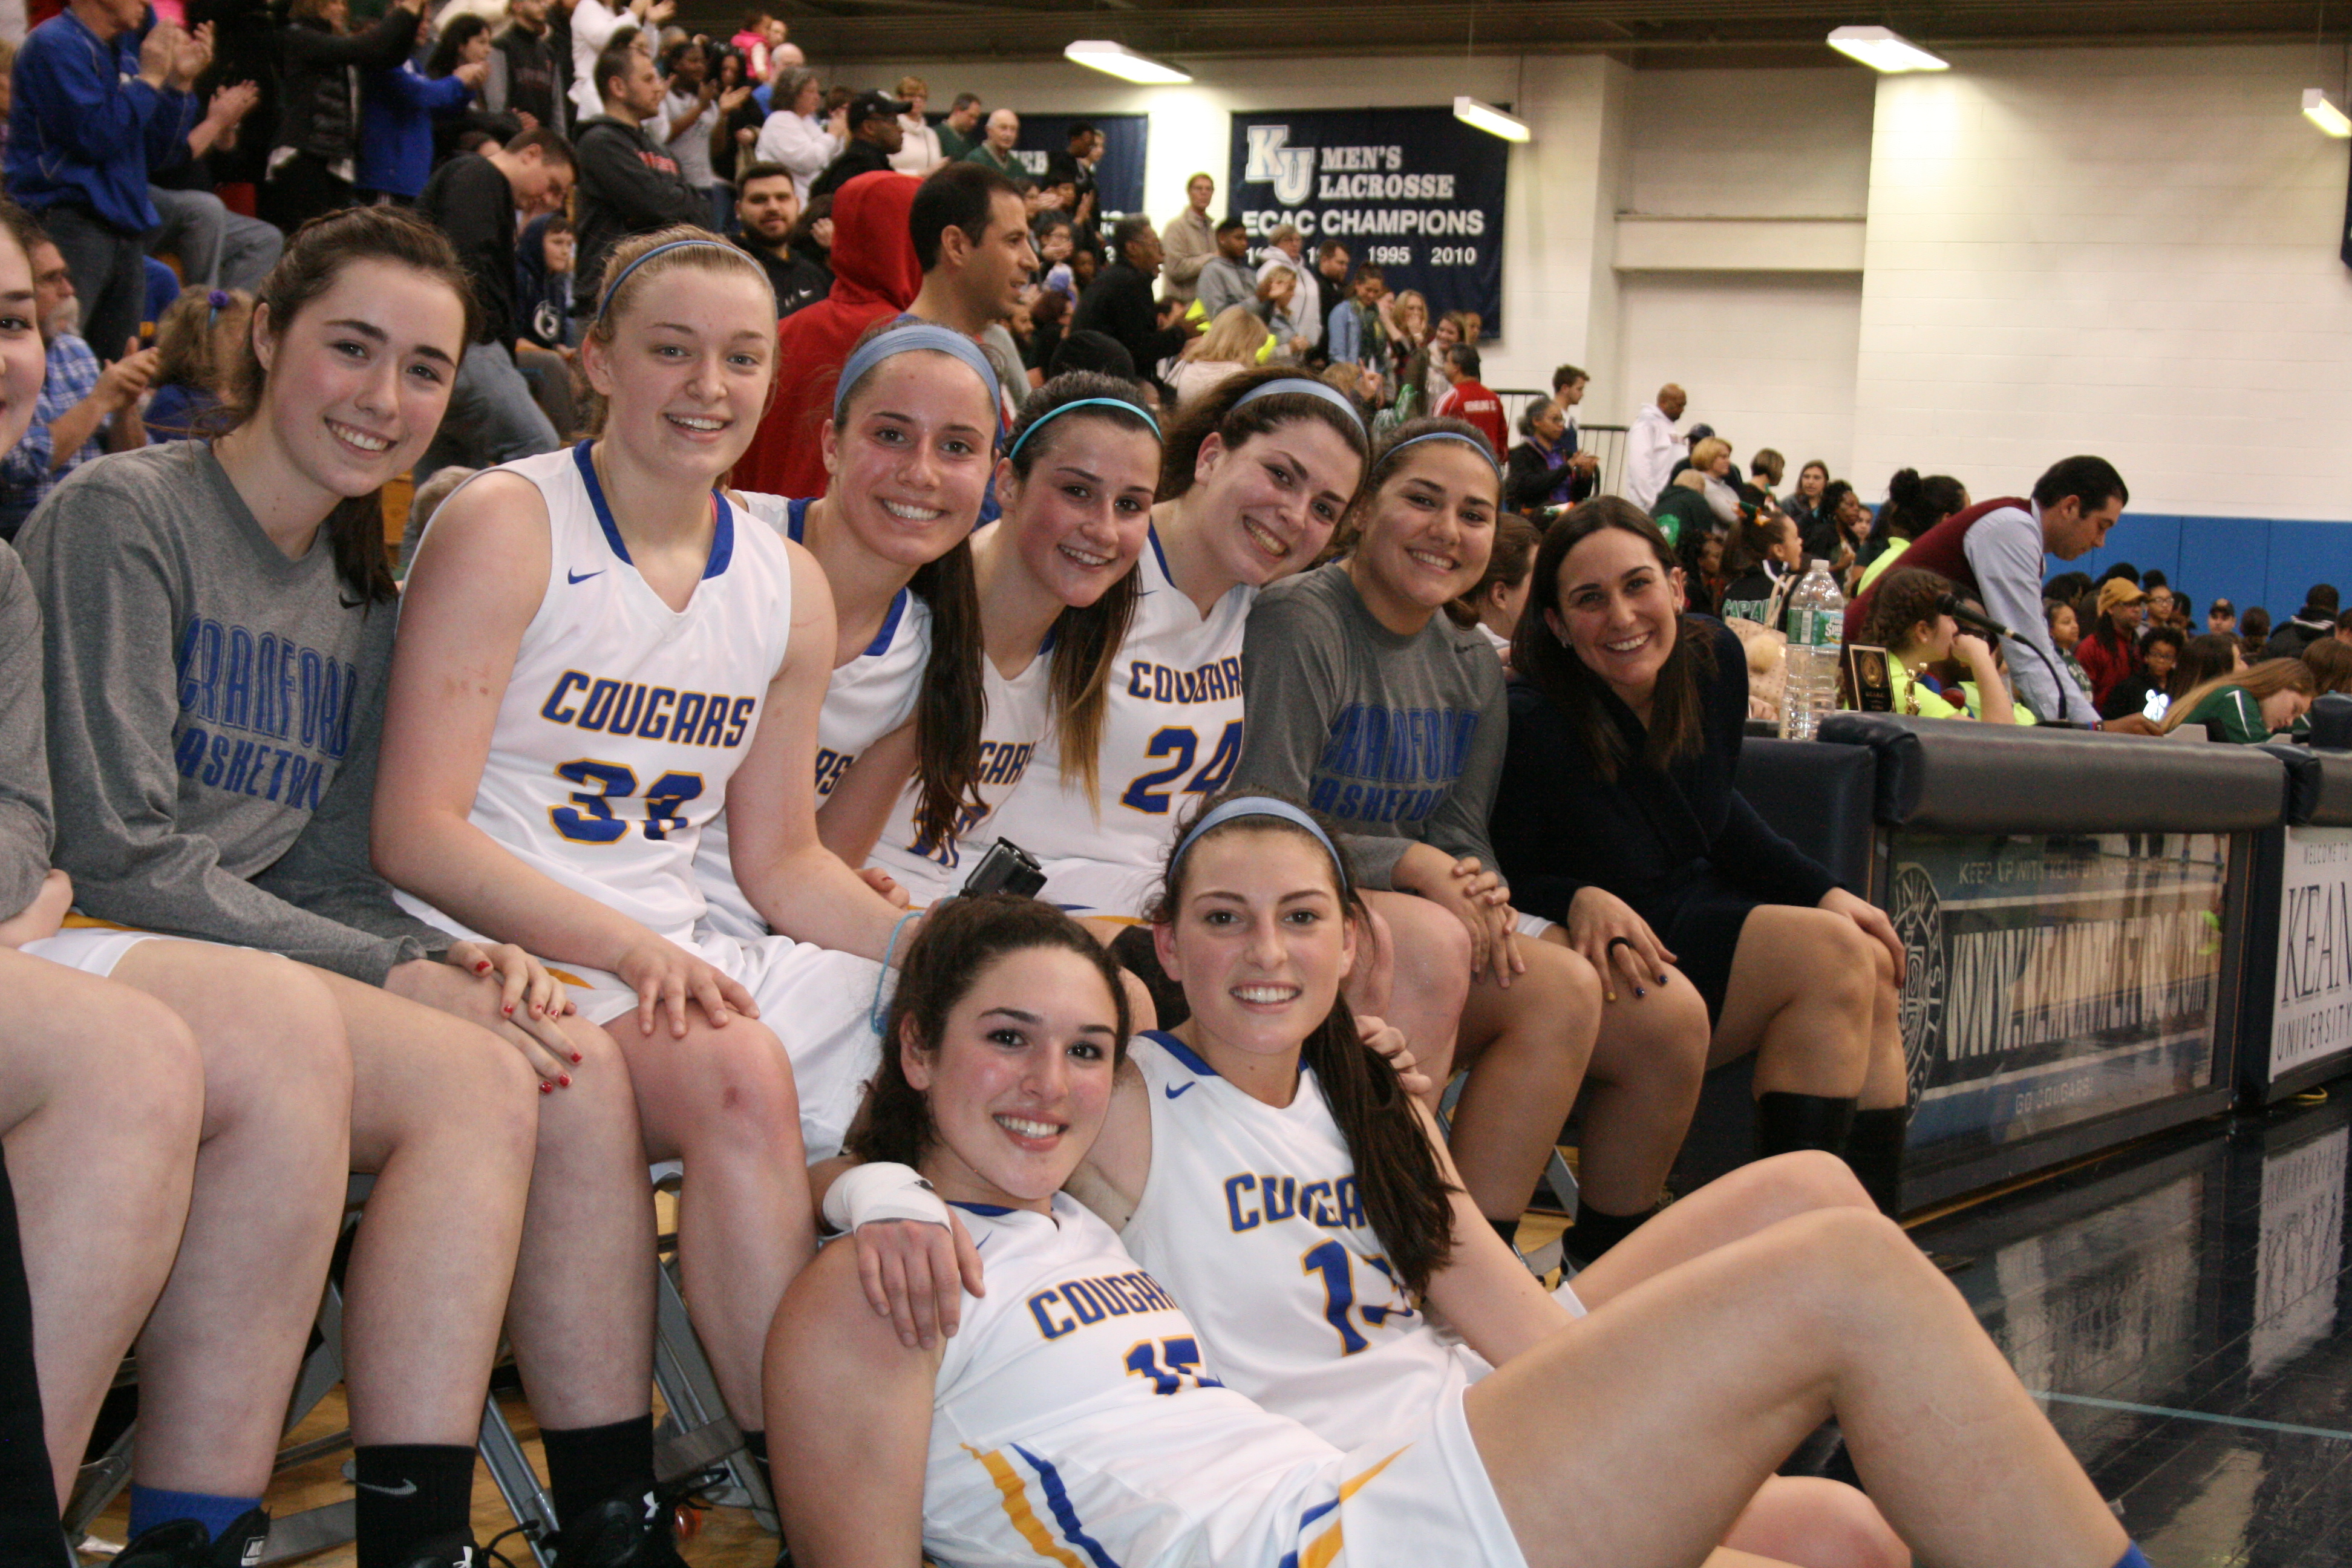 New jersey union county cranford - Cranford Girls Basketball Capture Union County Title Cranford Nj News Tapinto